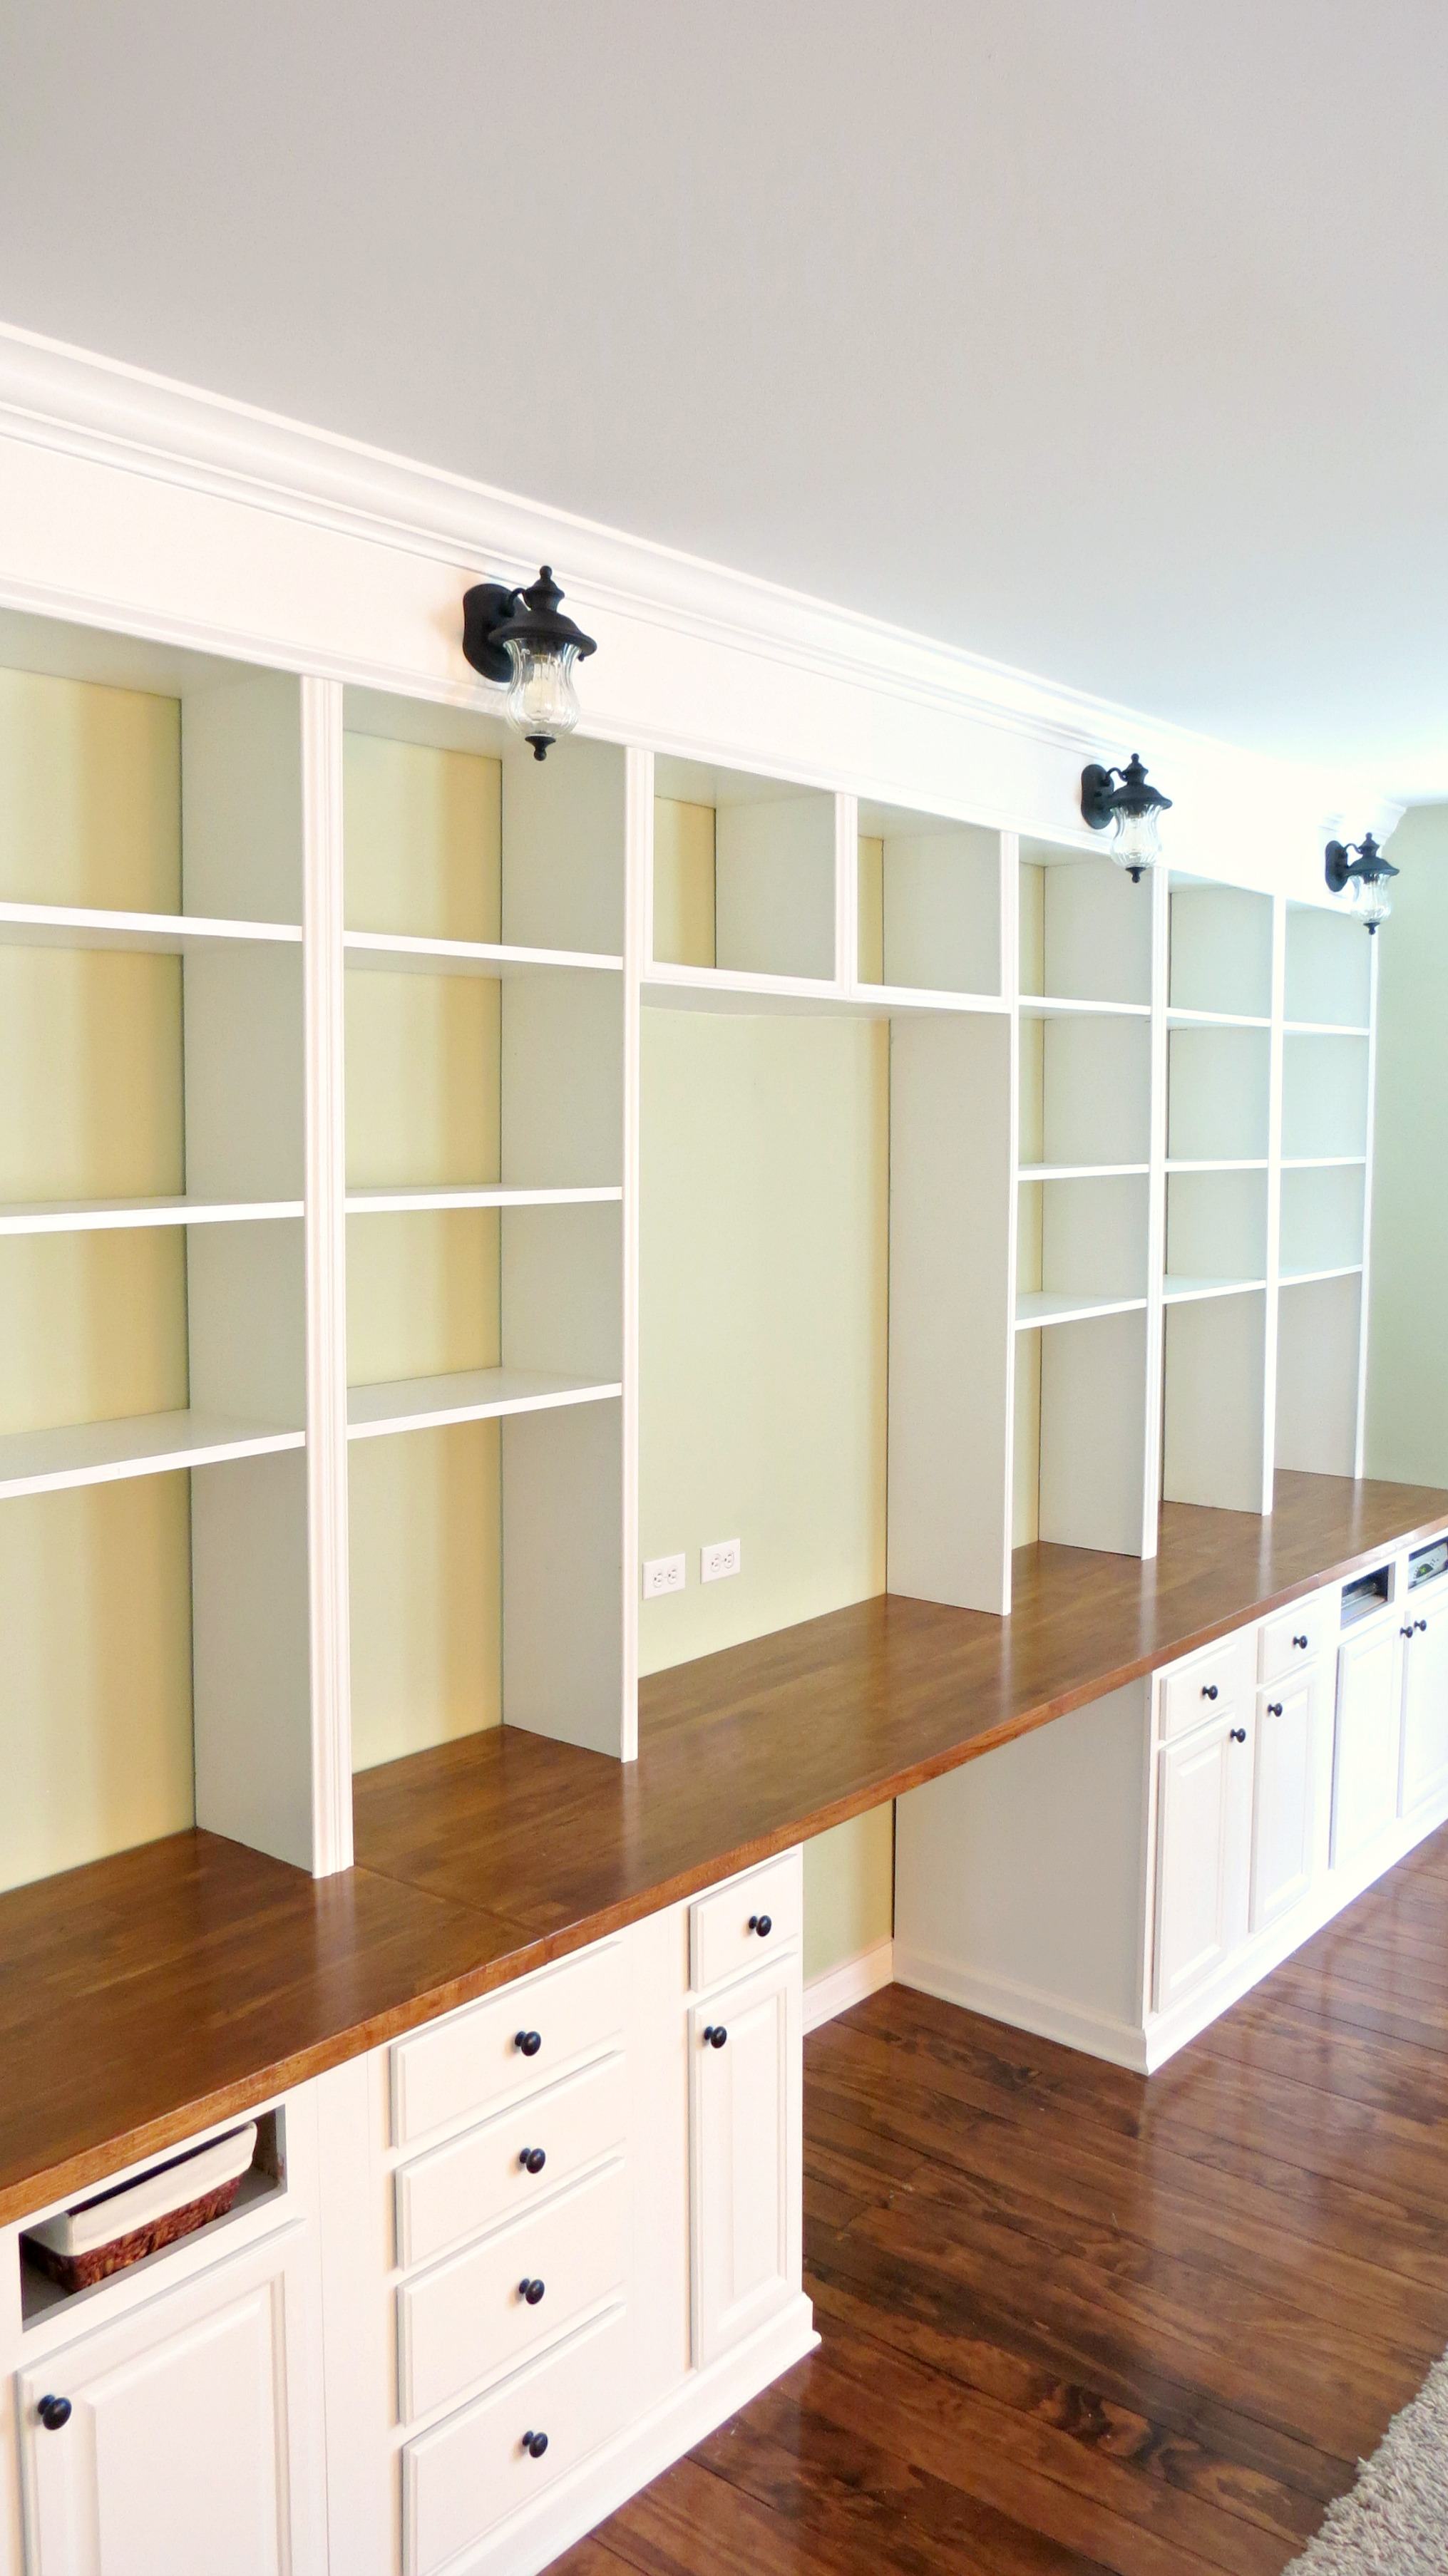 Smothery Build A Wall To Wall Built Bookcase Unit Home Is Where My Heart Is Featured On Remodelaholic Diy Wall Mounted Shelving Unit Diy Wall Shelving Unit Desk interior Building Wall Shelving Unit